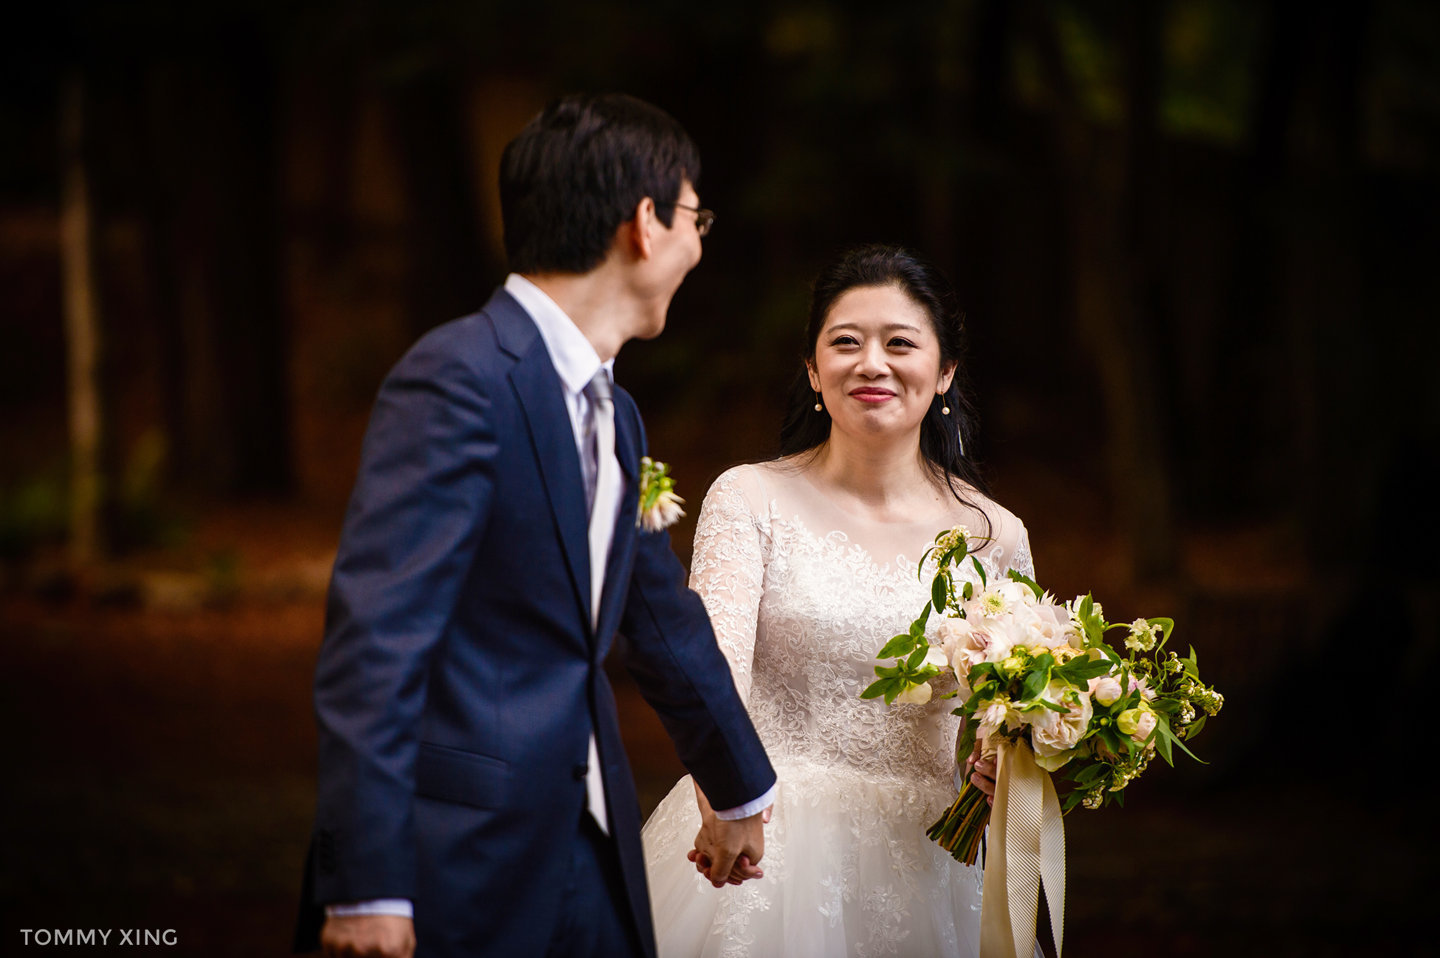 San Francisco Wedding Photography Valley Presbyterian Church WEDDING Tommy Xing Photography 洛杉矶旧金山婚礼婚纱照摄影师097.jpg